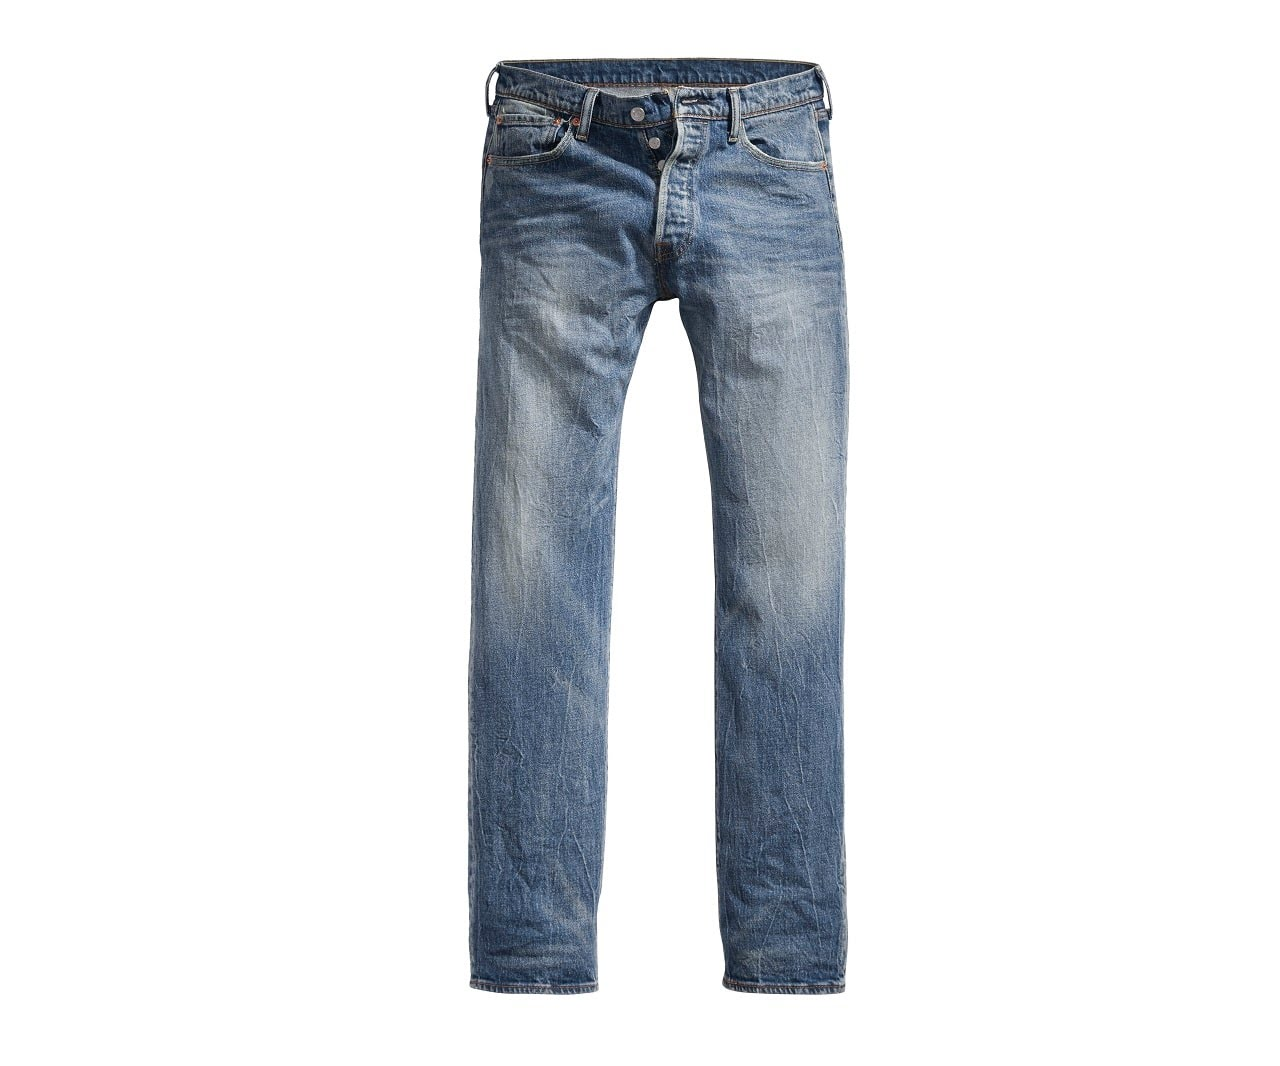 Le denim Shrink-To-Fit 501 CT, nouvel emblème de Levi's